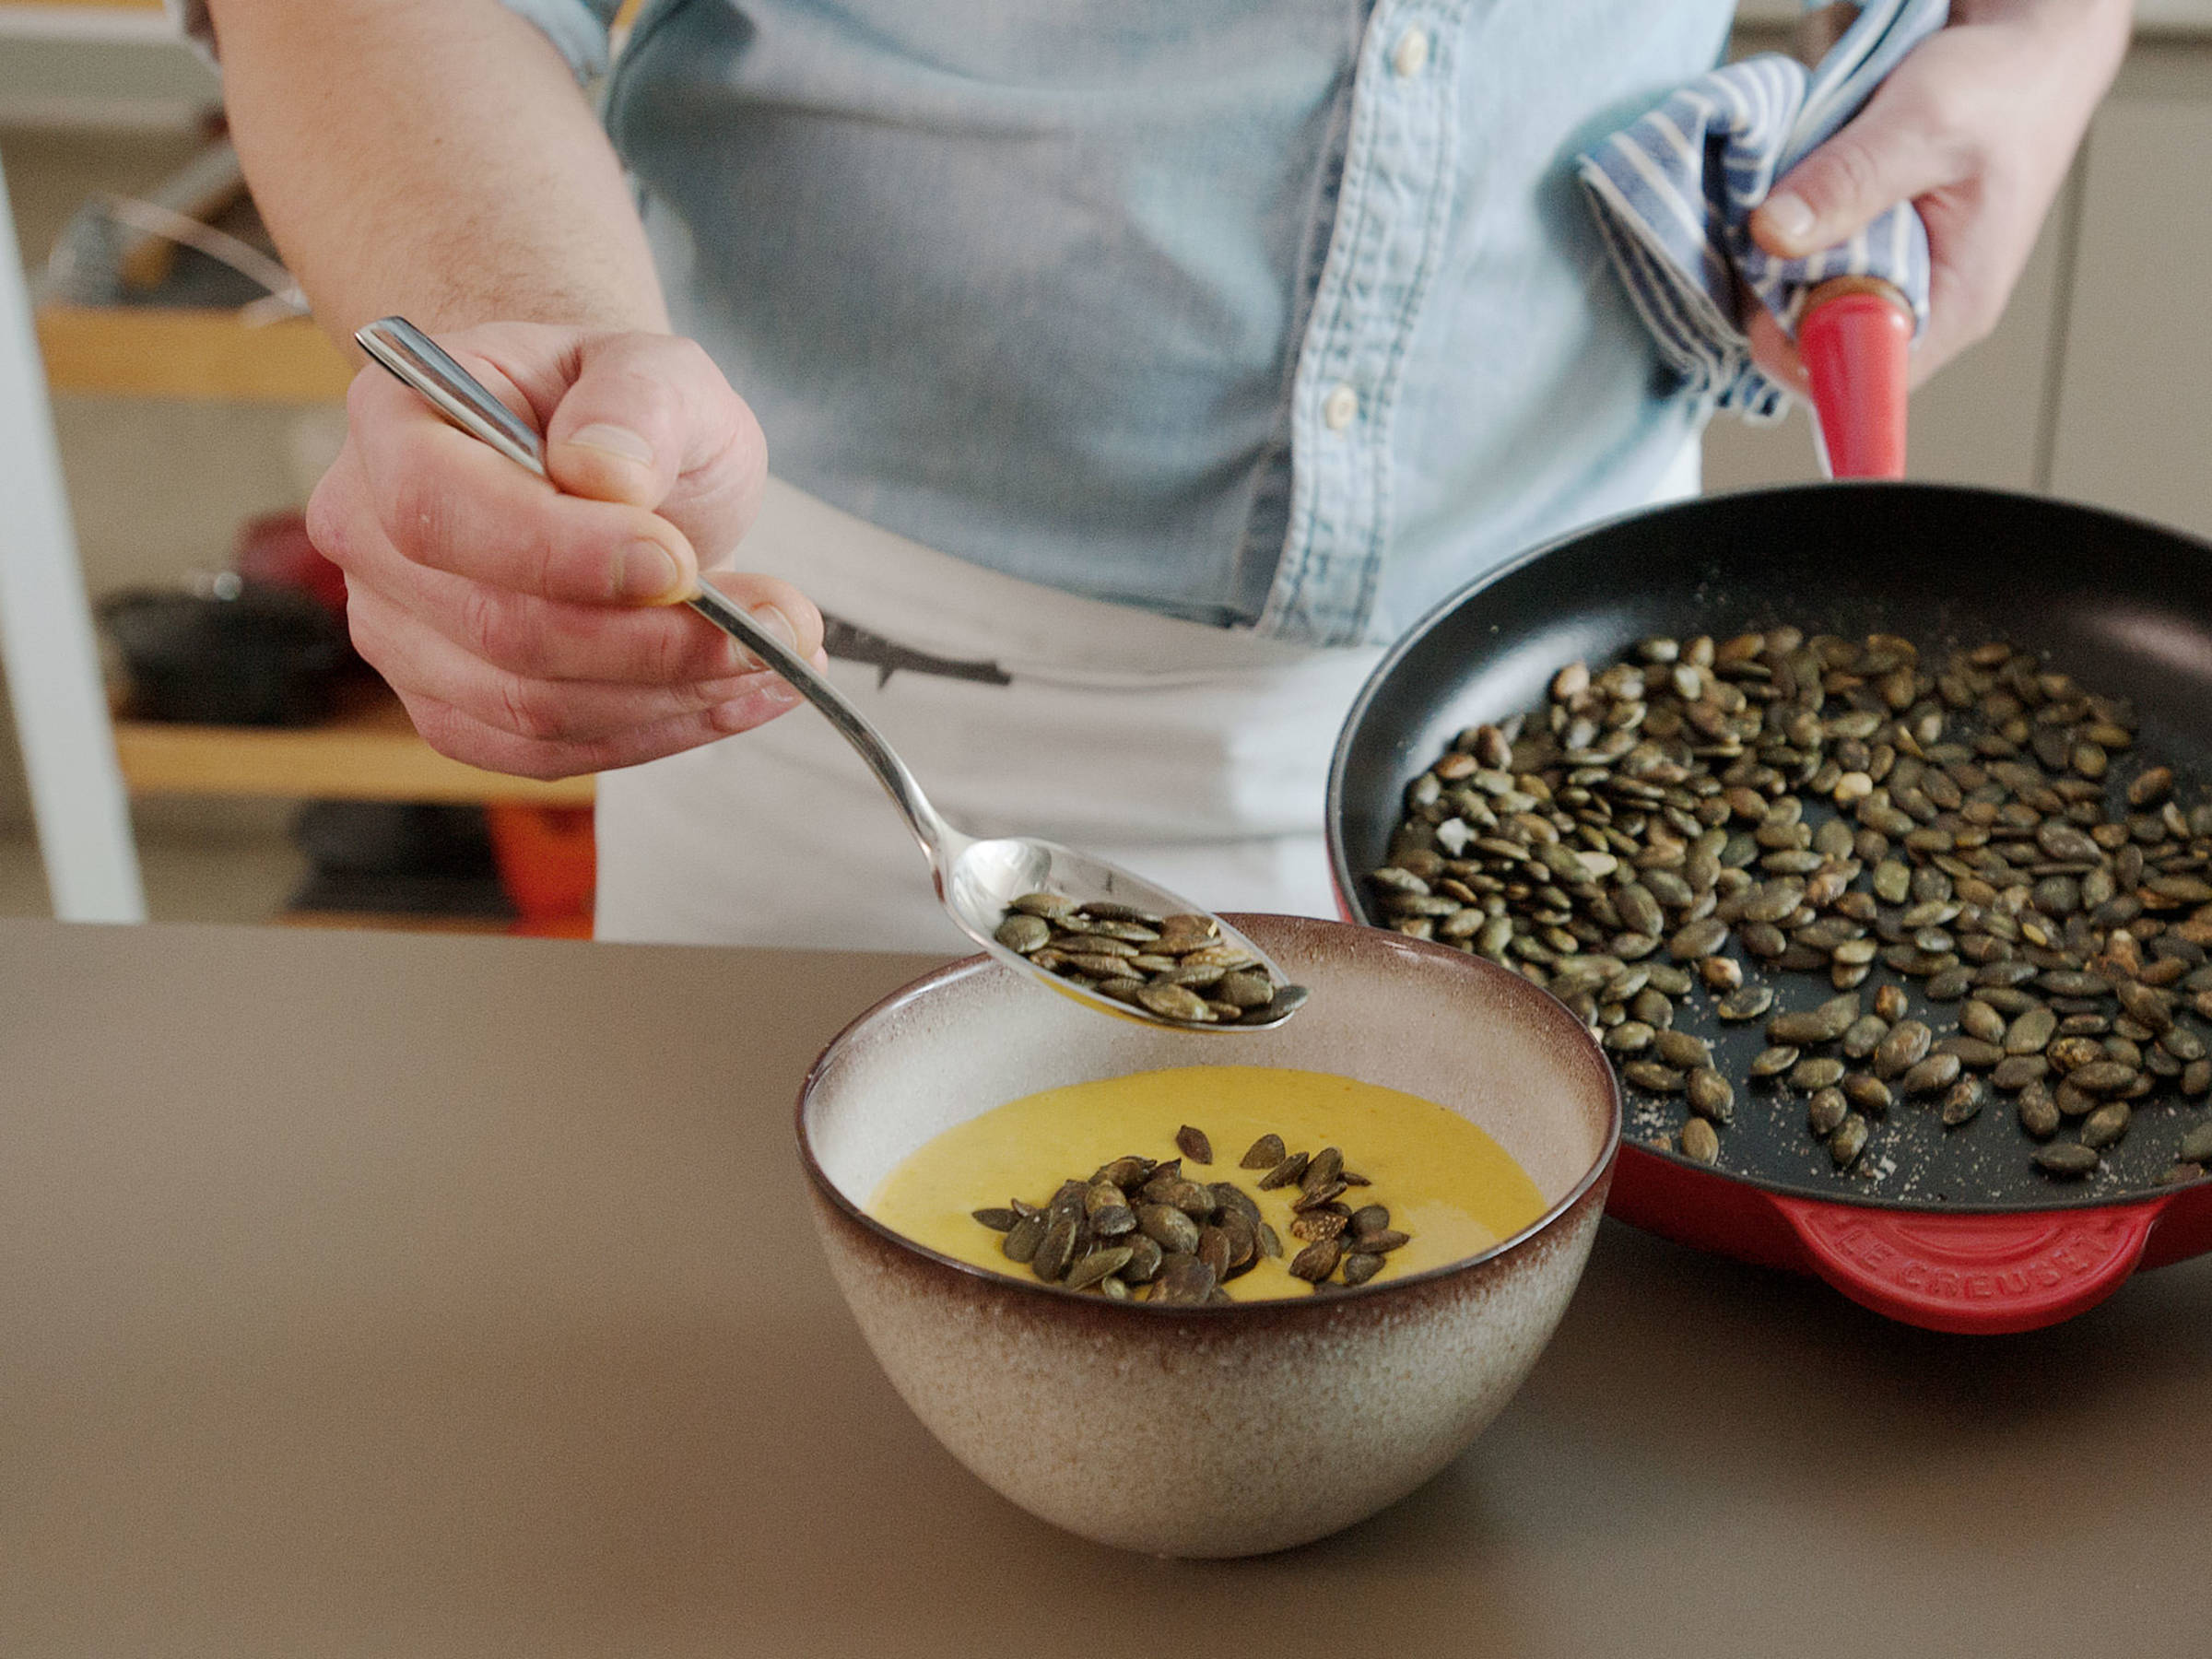 Turn off heat and stir in yogurt. With a hand blender, blend mixture until creamy. Serve with toasted pumpkin seeds and cilantro to taste. Enjoy!